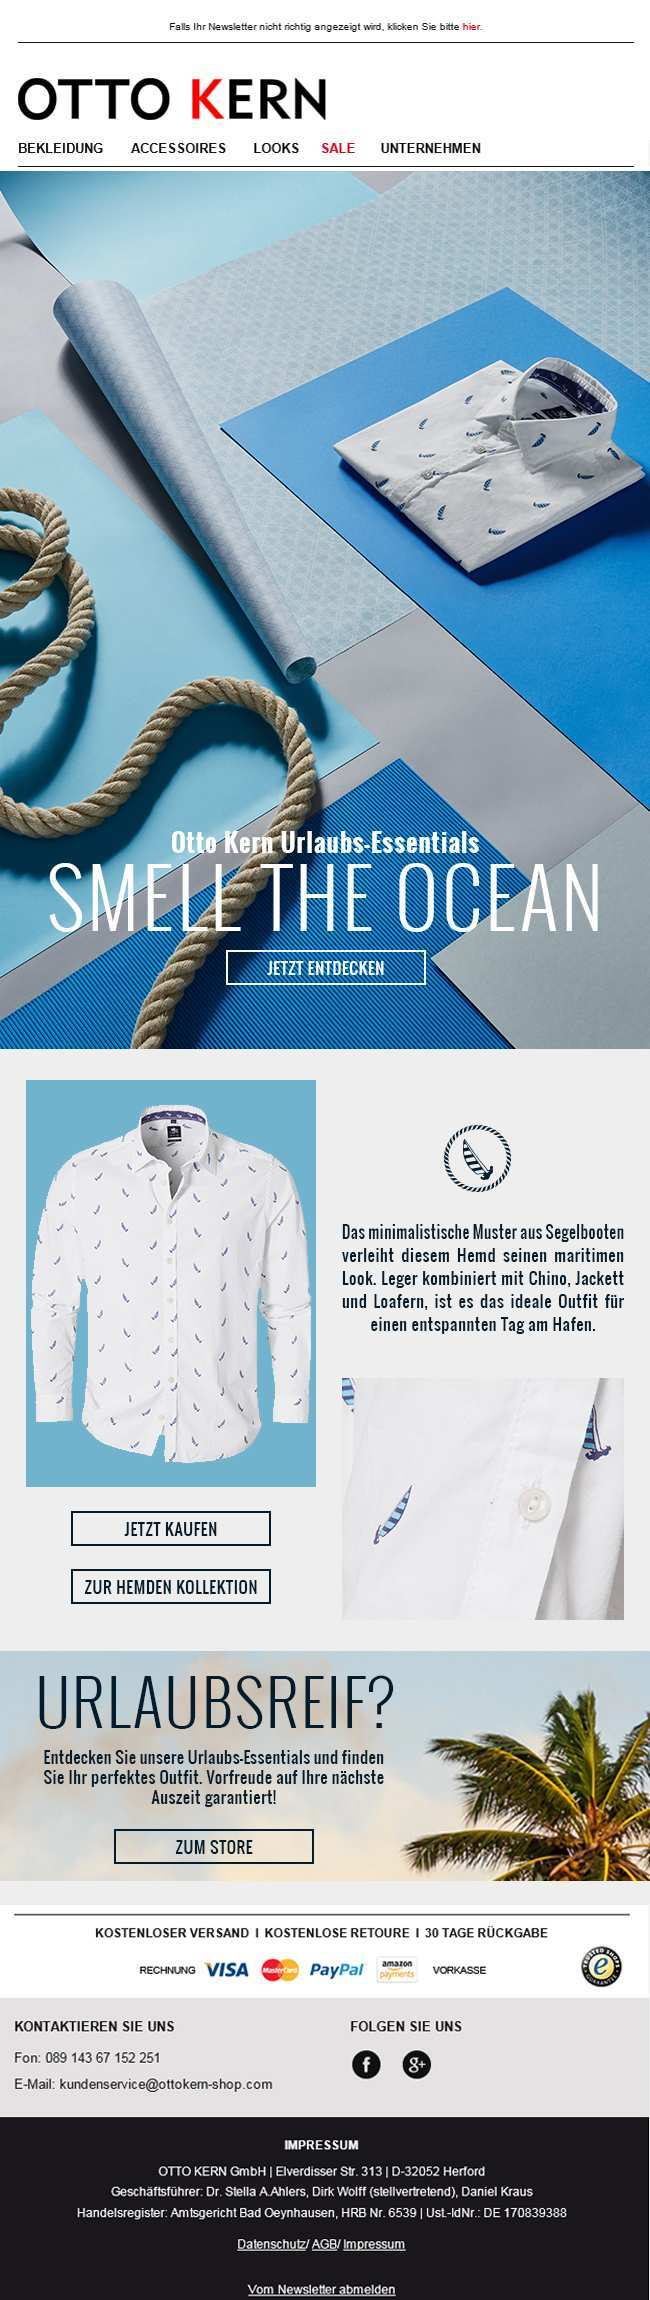 Taste The Sun Fashion For Men Otto Kern Presents The New Casual Shirts Collection For Spring Summer 2016 Newsletter Premium Fashion Minimal Prints My Design